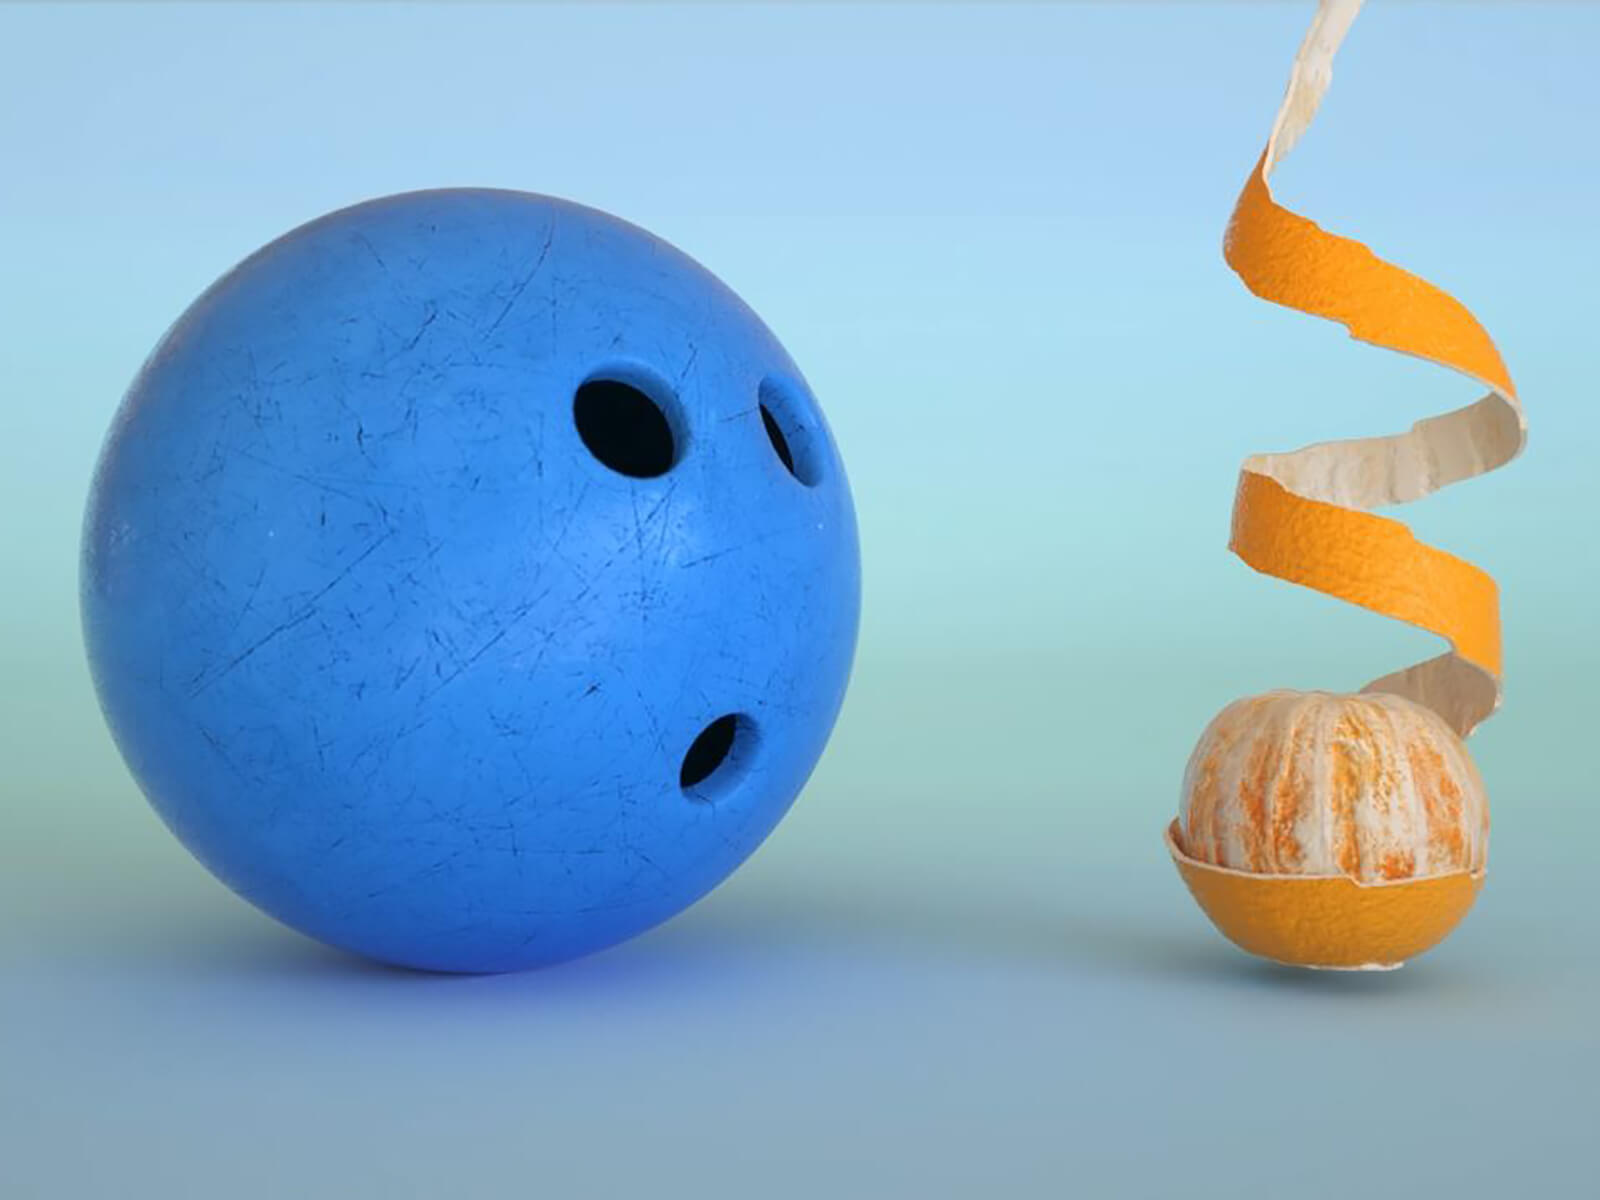 CG image of a bowling ball and peeled orange by Jonathan Bourim and Christophe Bouchard.